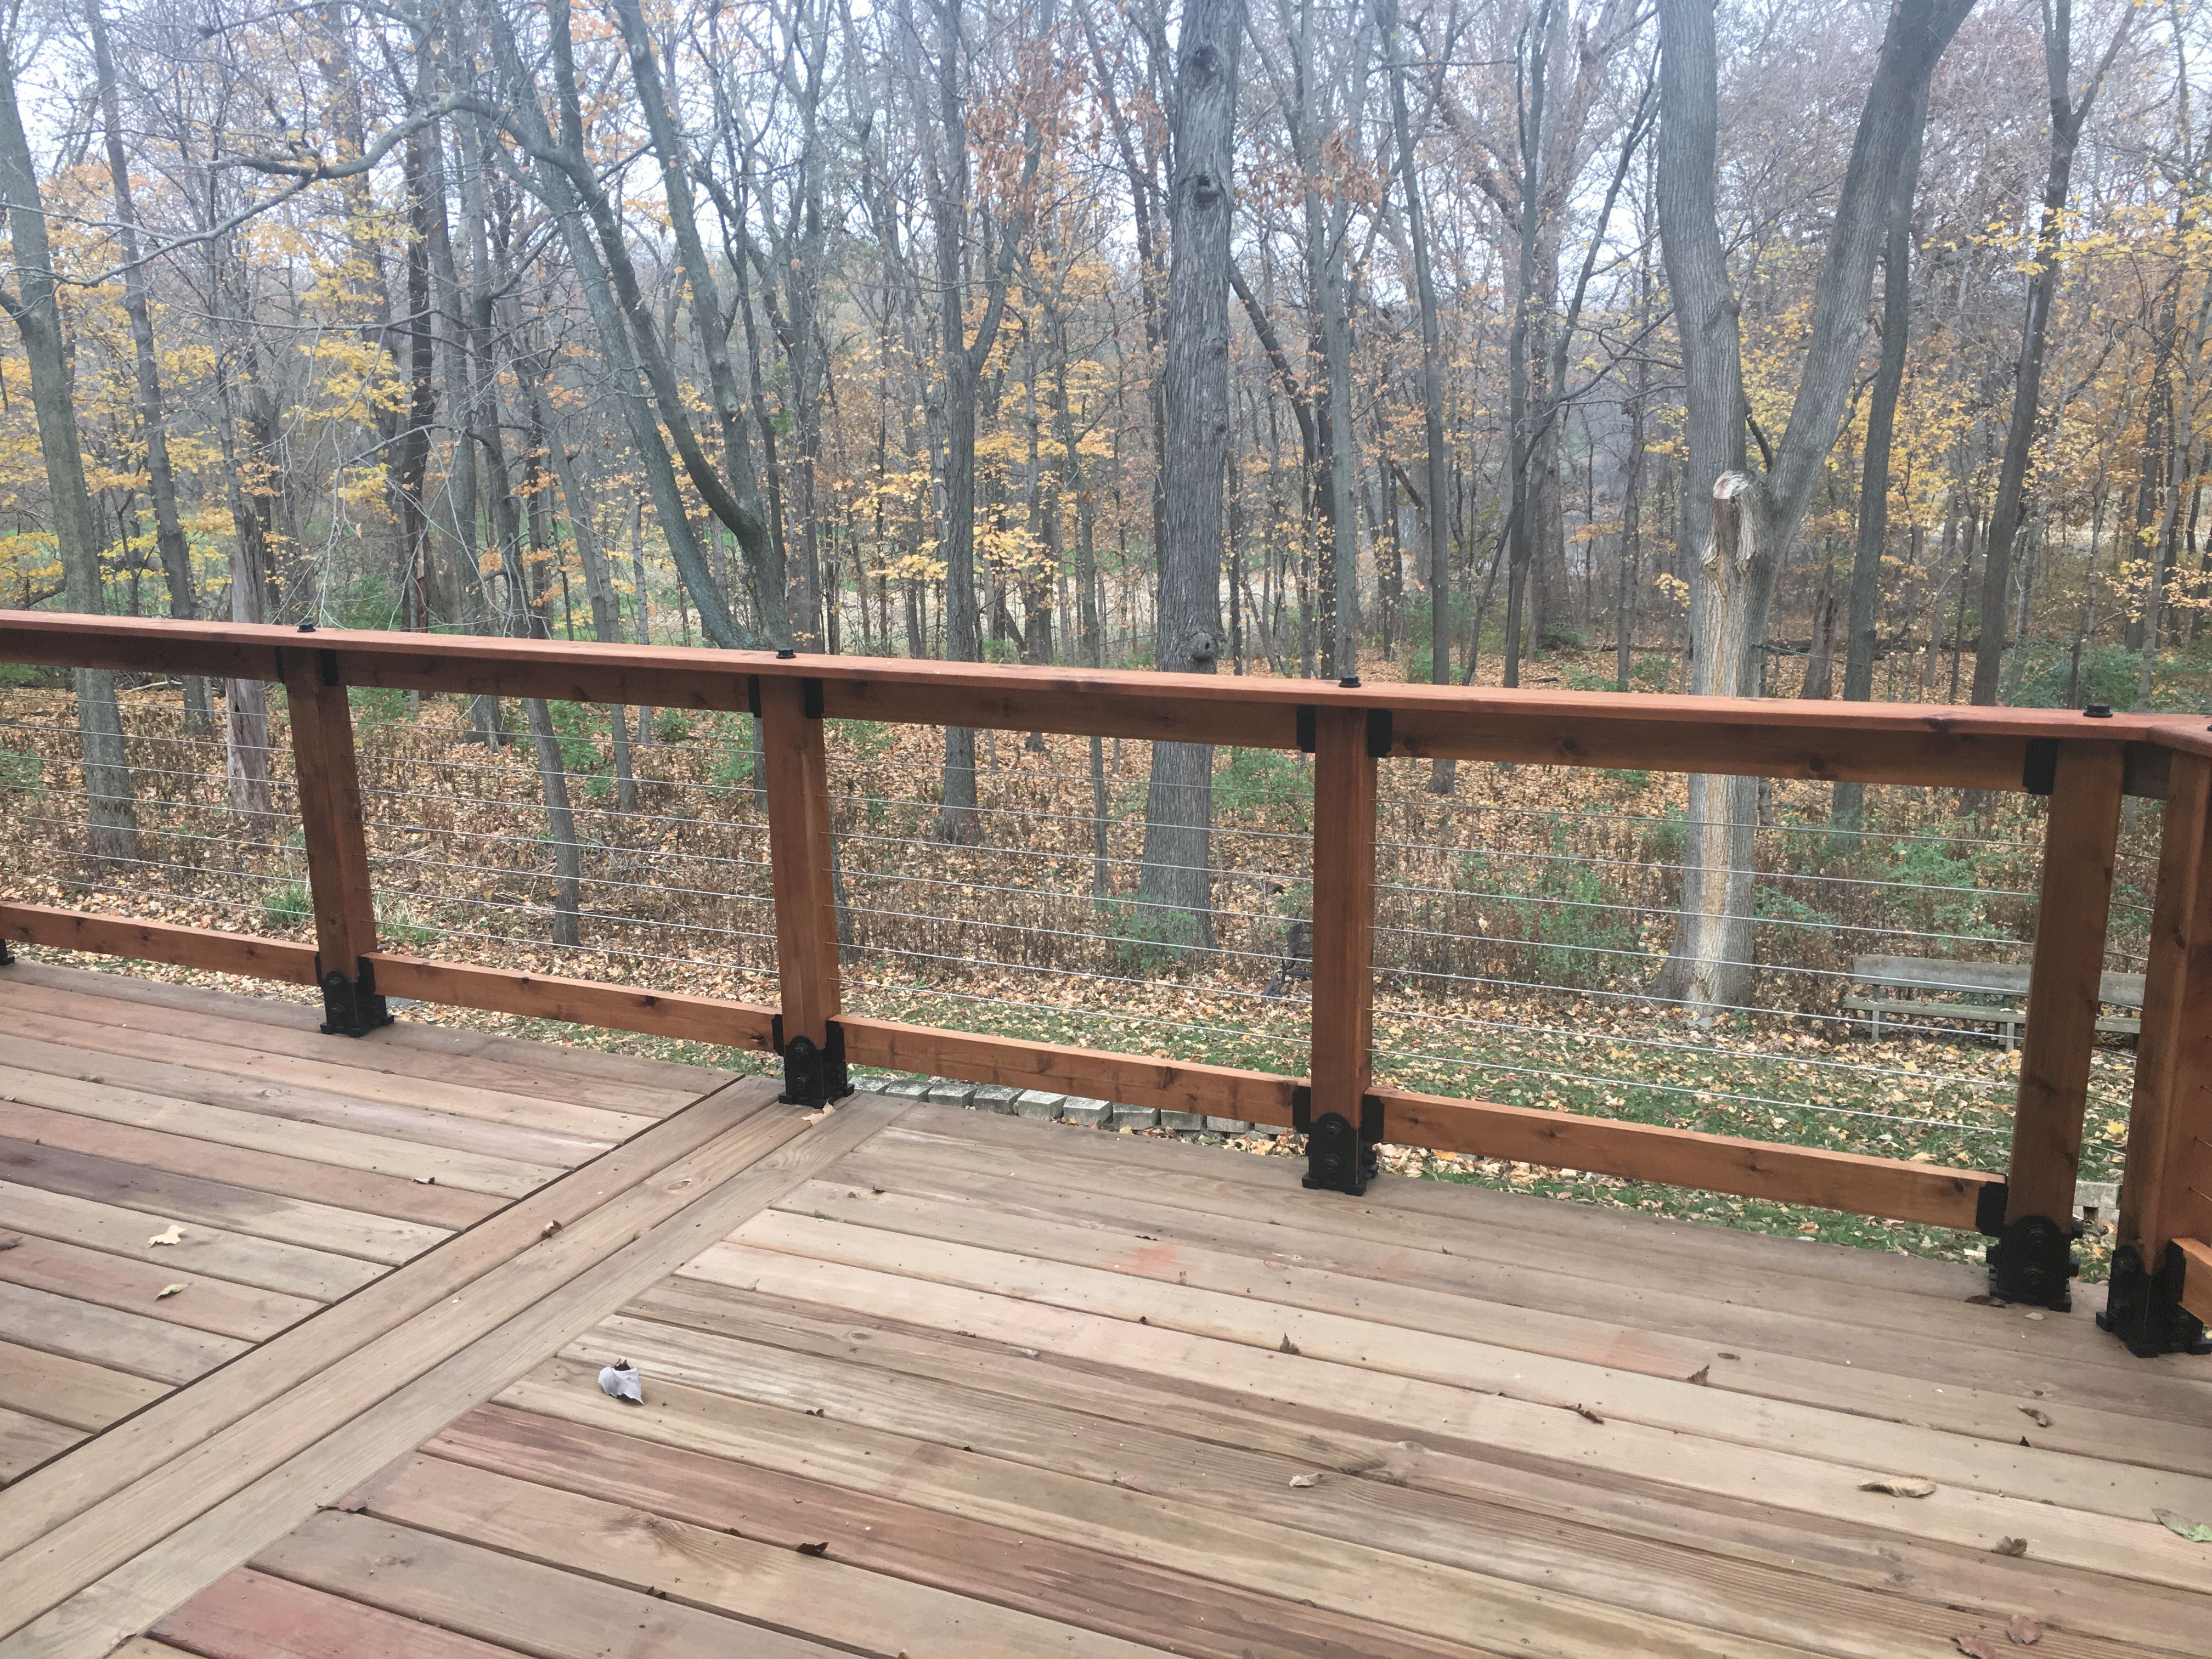 Installed Cable Railing Thru Cedar Posts Posts Were Bracketed Onto Deck Using Ozco Products From Menards Cables Purchase Building A Deck Diy Deck Cedar Posts